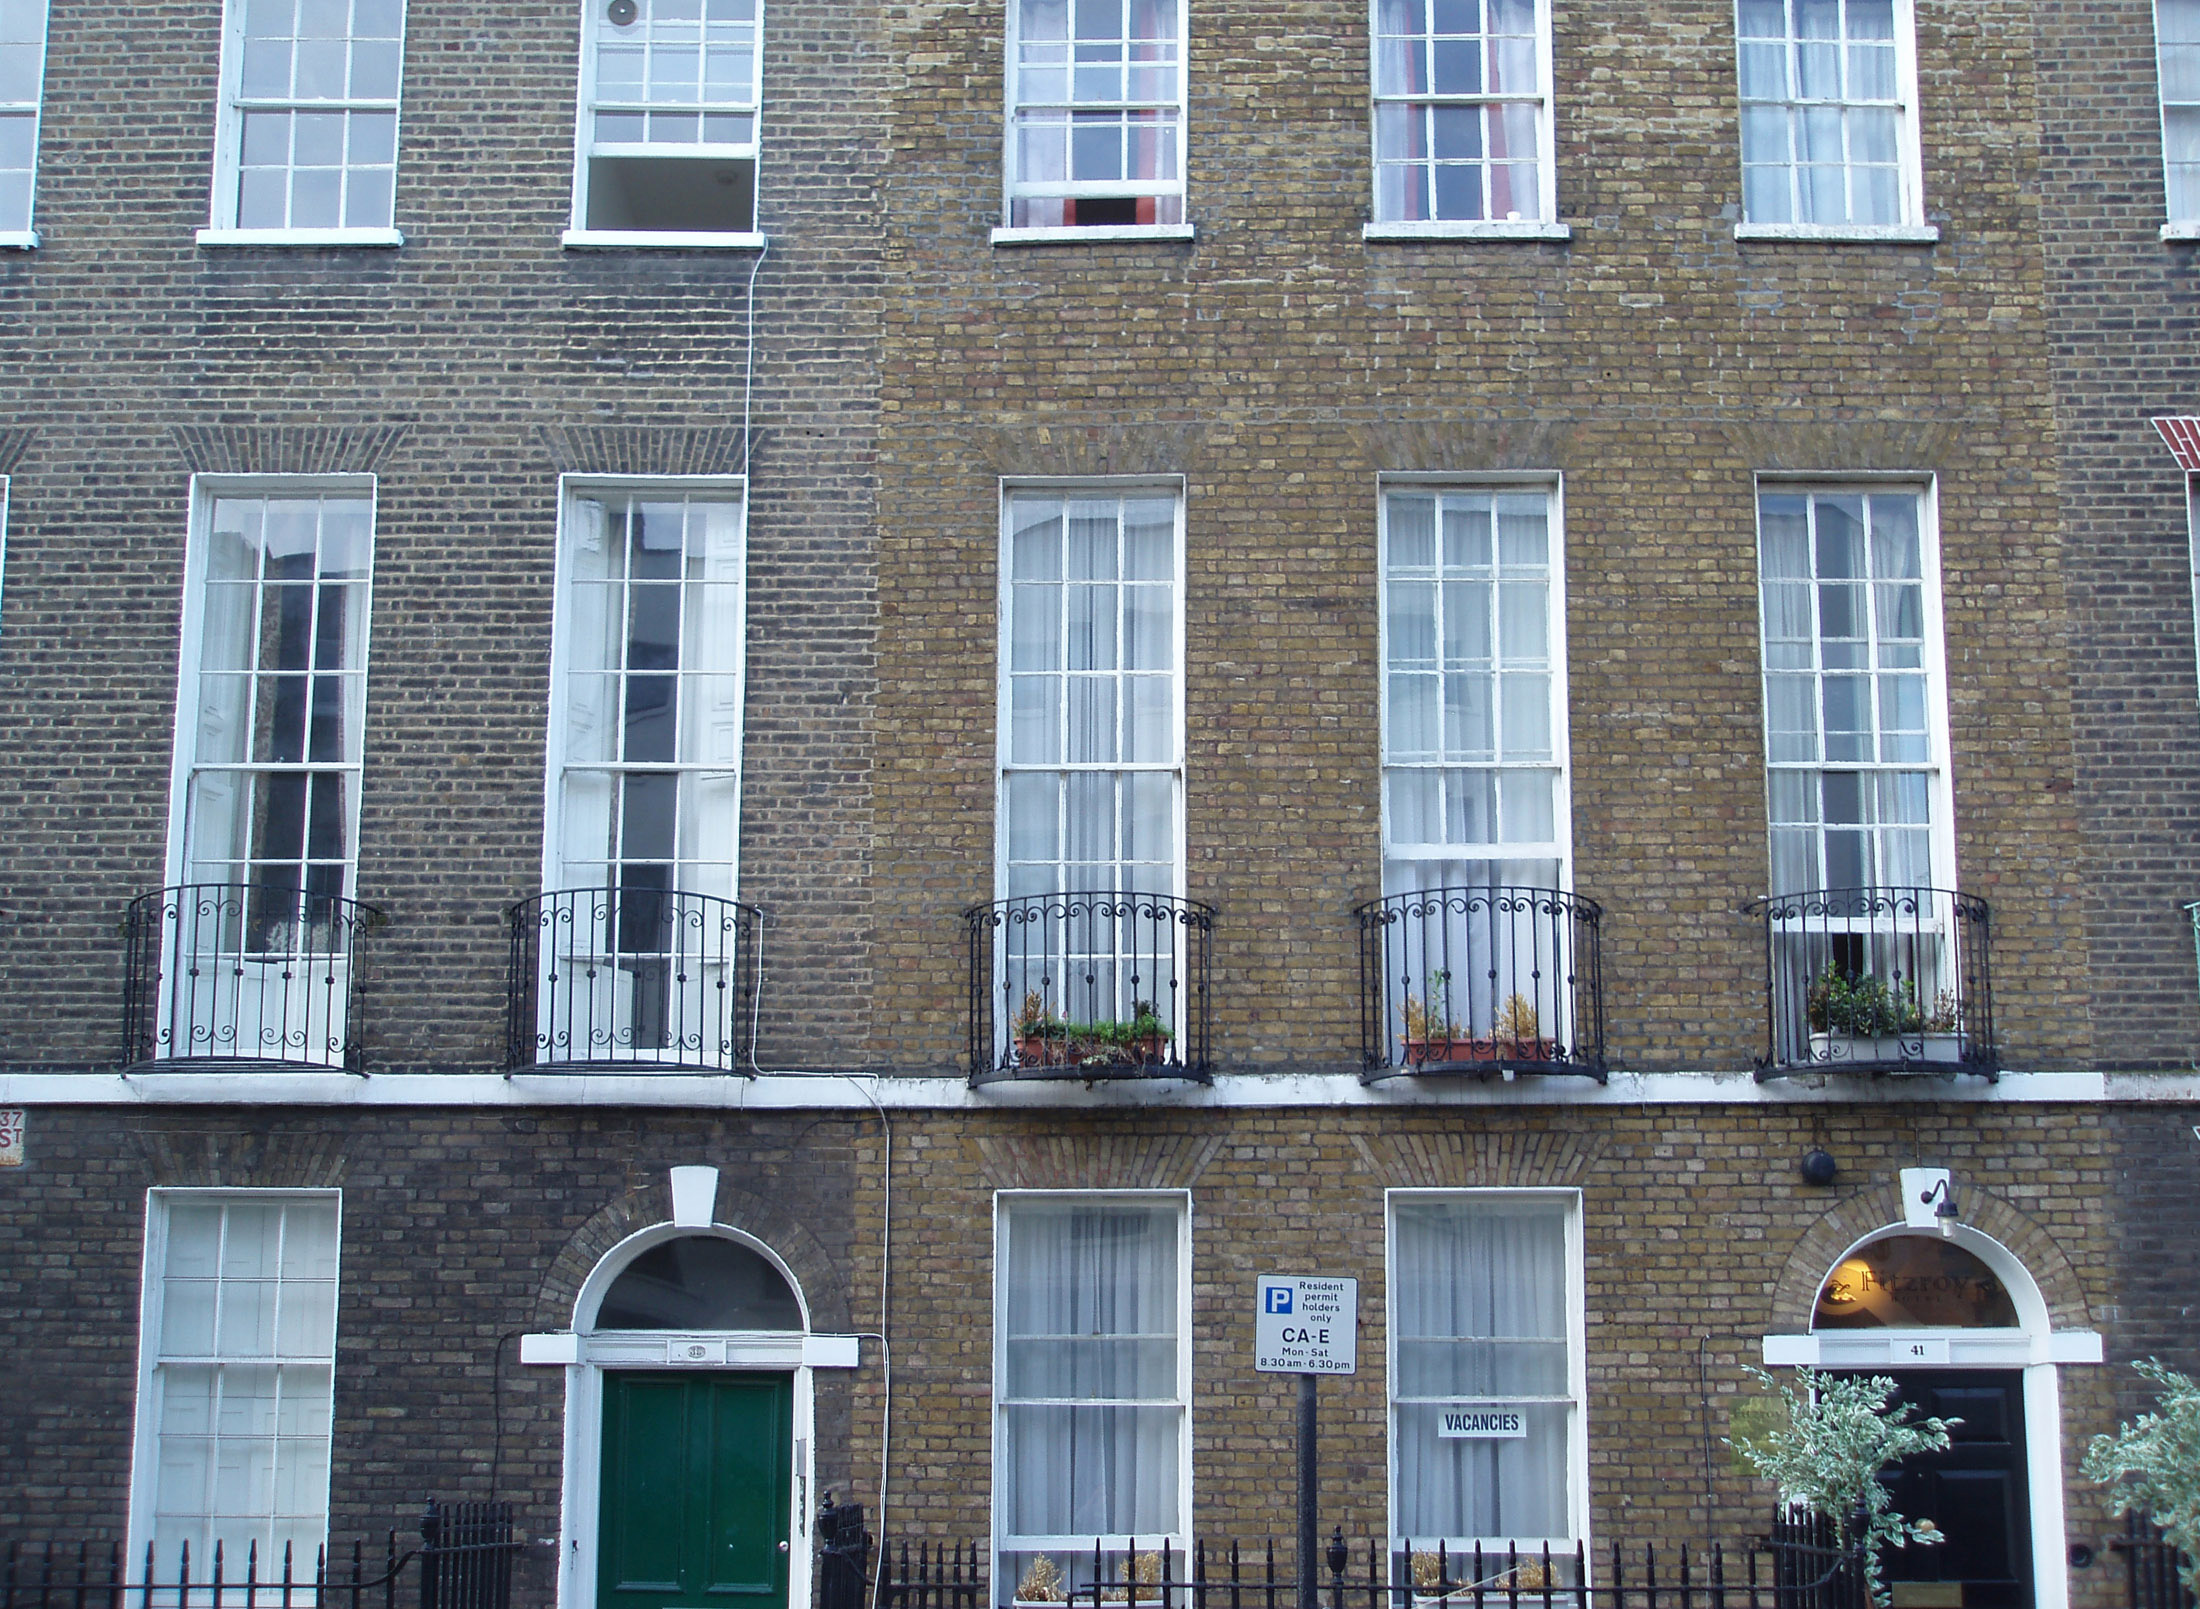 Georgian terraced houses with their tall elegant sash windows and arched entrances in London, UK